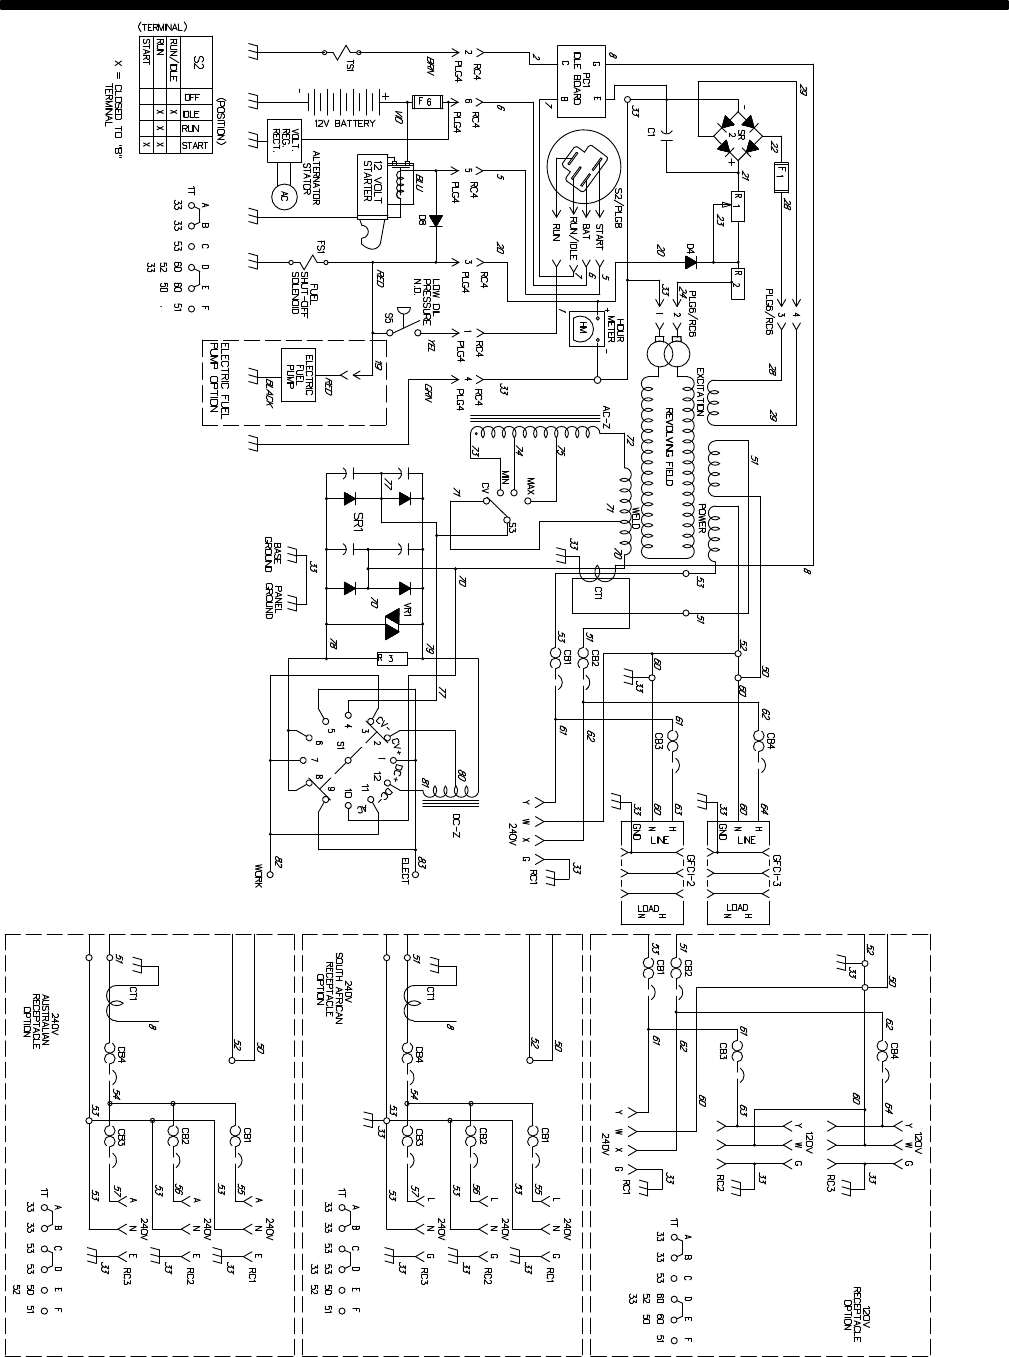 d3bdac77 e713 43b4 a88f 6532334b38fe bg16?resize\=665%2C894 diagrams 759657 lincoln gas welder wiring diagram lincoln sa200 lincoln weldanpower g8000 wiring diagrams at gsmx.co